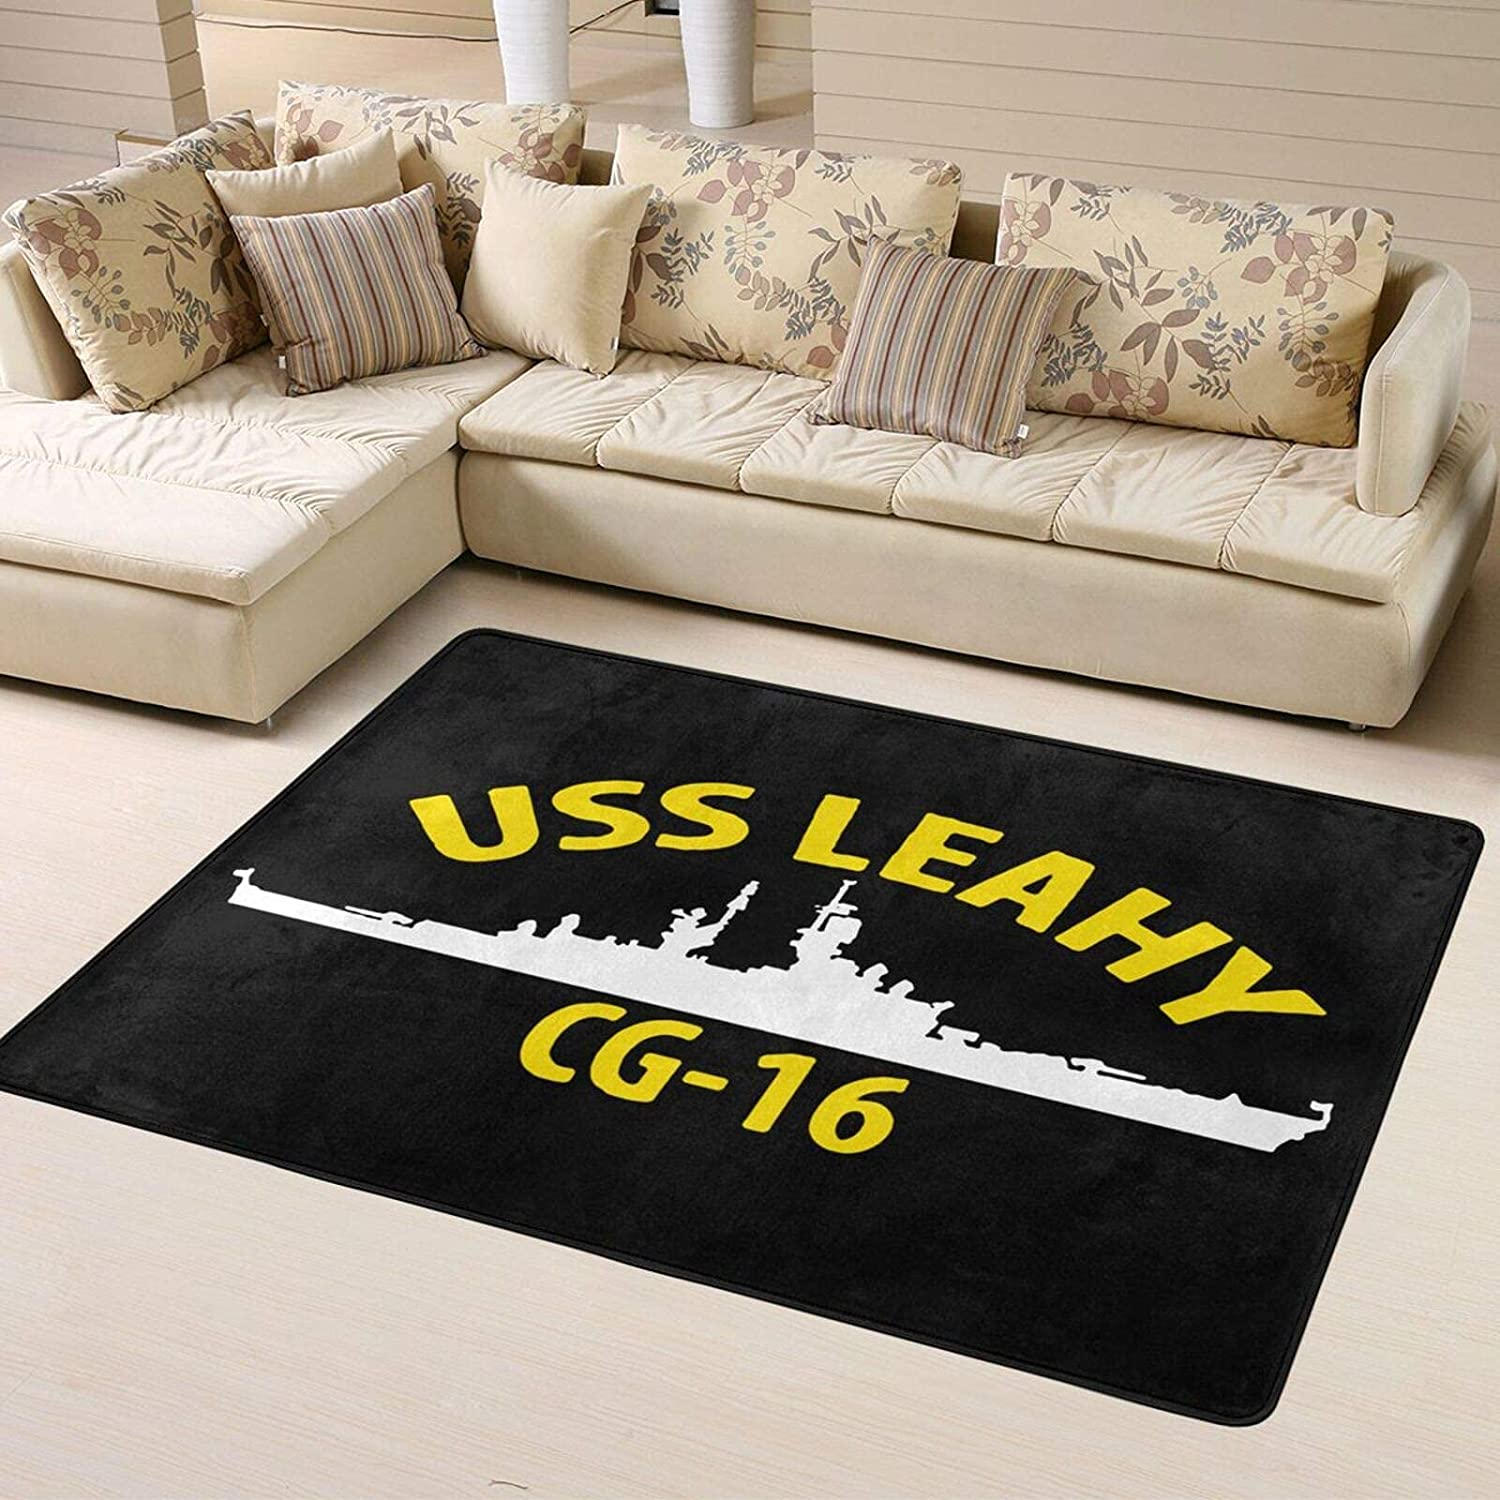 USS Rapid rise Leahy Cg-16 Super Soft In Home Over item handling Personalized Decoration Rugs